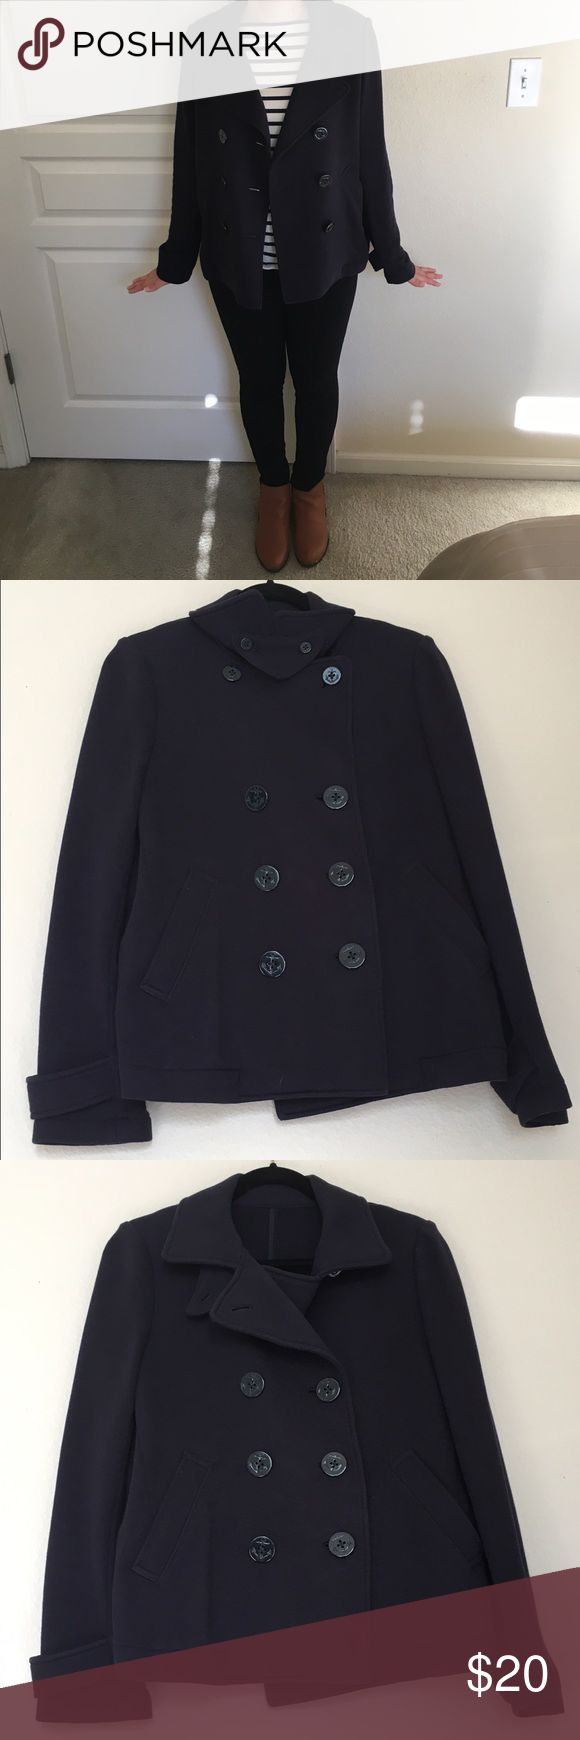 """Uniqlo Japan Navy Coat Navy pea coat from Uniqlo Japan. Light jacket for early spring or fall. The size is a large, but runs more like a medium. 100% cotton. Two ways you can button the coat, and the buttons have an anchor detail. ⚓️I'm wearing the coat in the picture, and I'm 5'3"""". Offers are welcome :)) Uniqlo Jackets & Coats Pea Coats"""